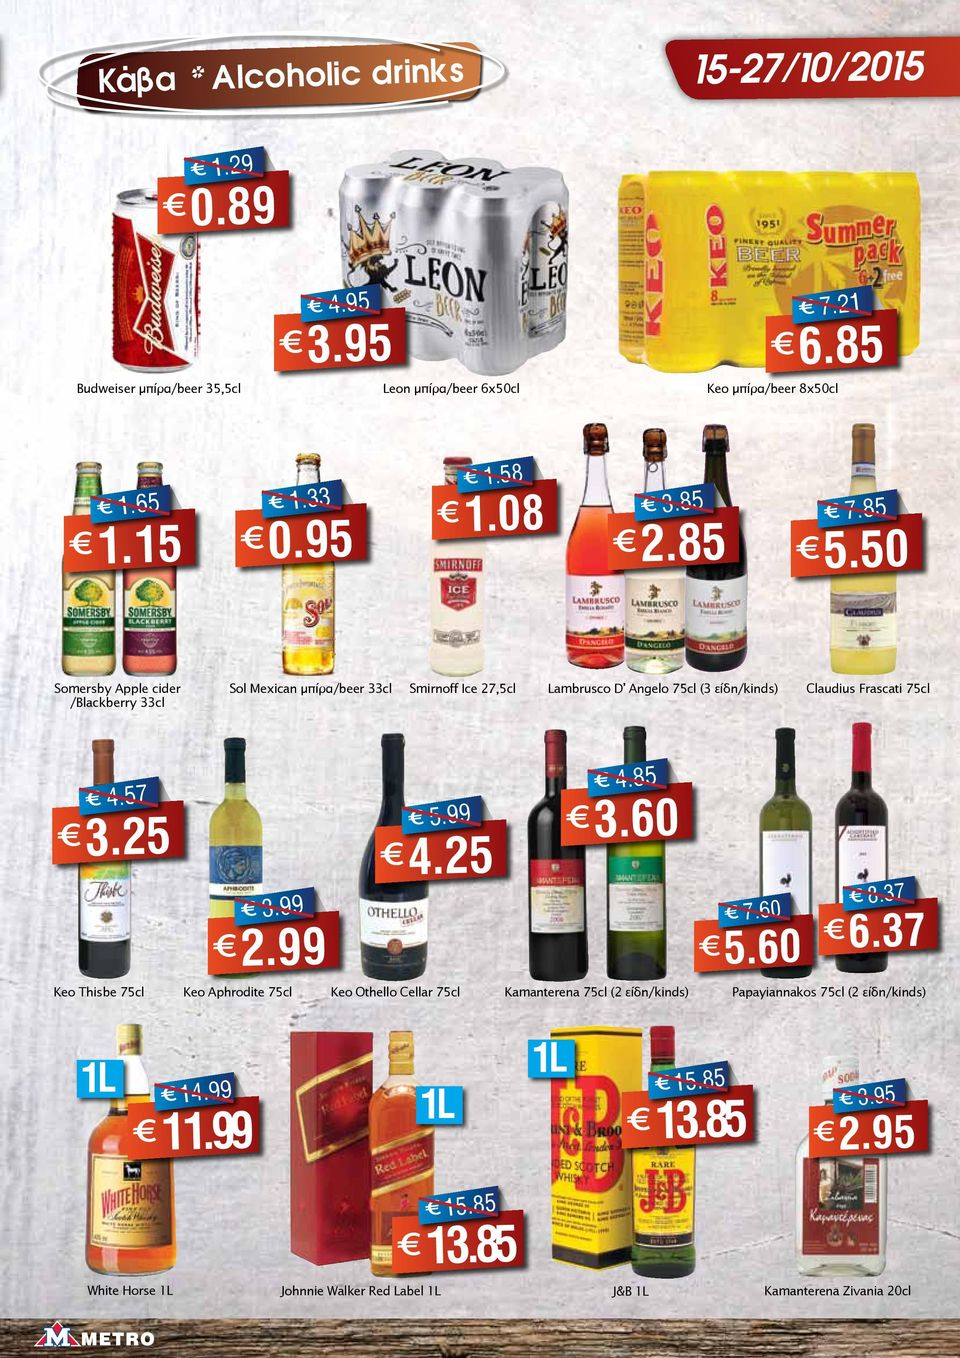 50 Somersby Apple cider /Blackberry 33cl Sol Mexican μπίρα/beer 33cl Smirnoff Ice 27,5cl Lambrusco D Angelo 75cl (3 είδη/kinds) Claudius Frascati 75cl 4.57 3.25 3.